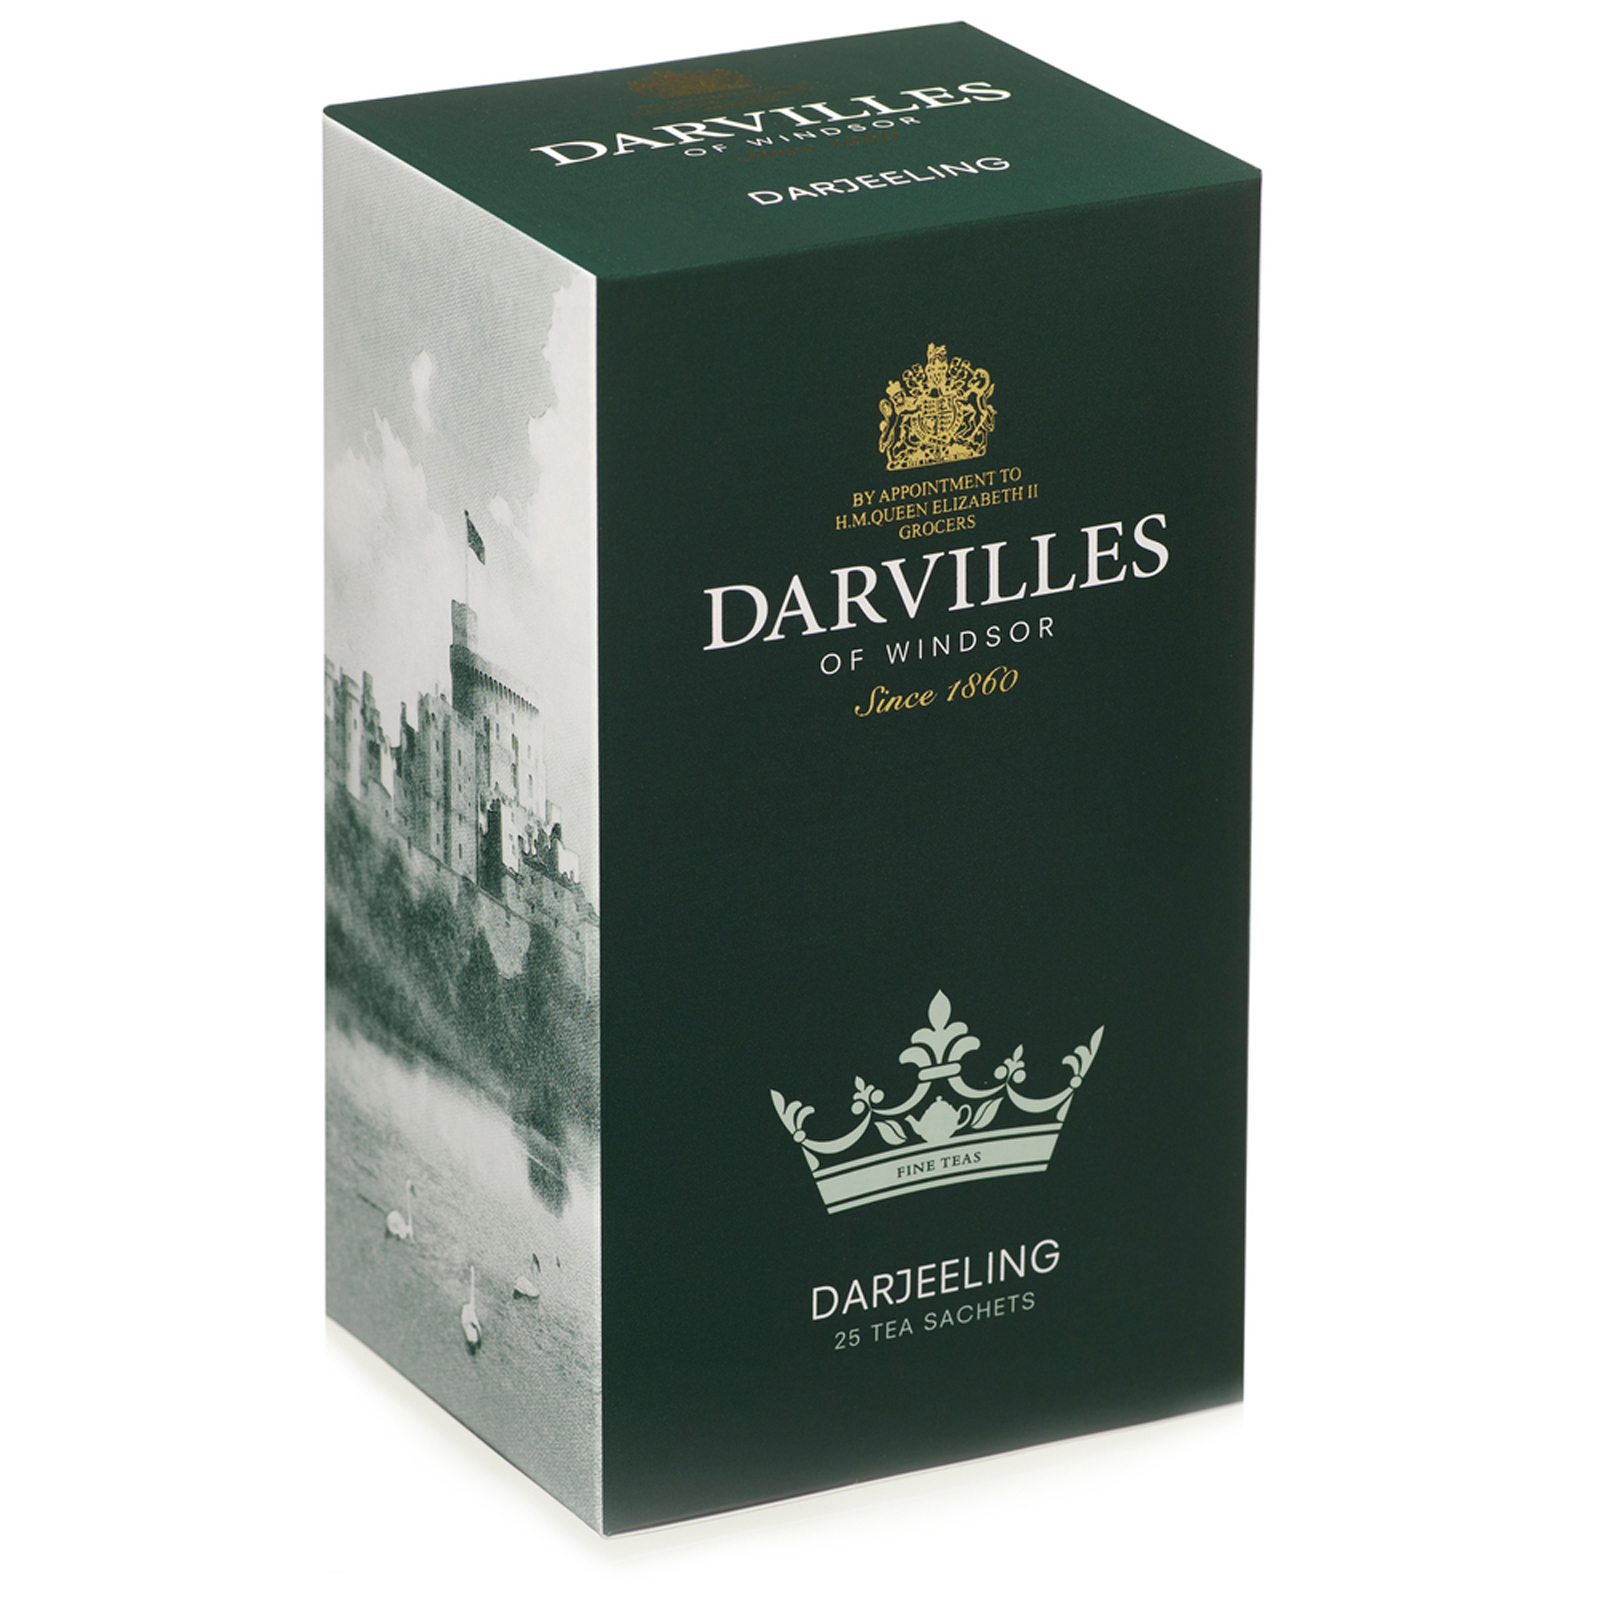 Darvilles of Windsor  Darjeeling 25 Tagged Sachet Box 50gm